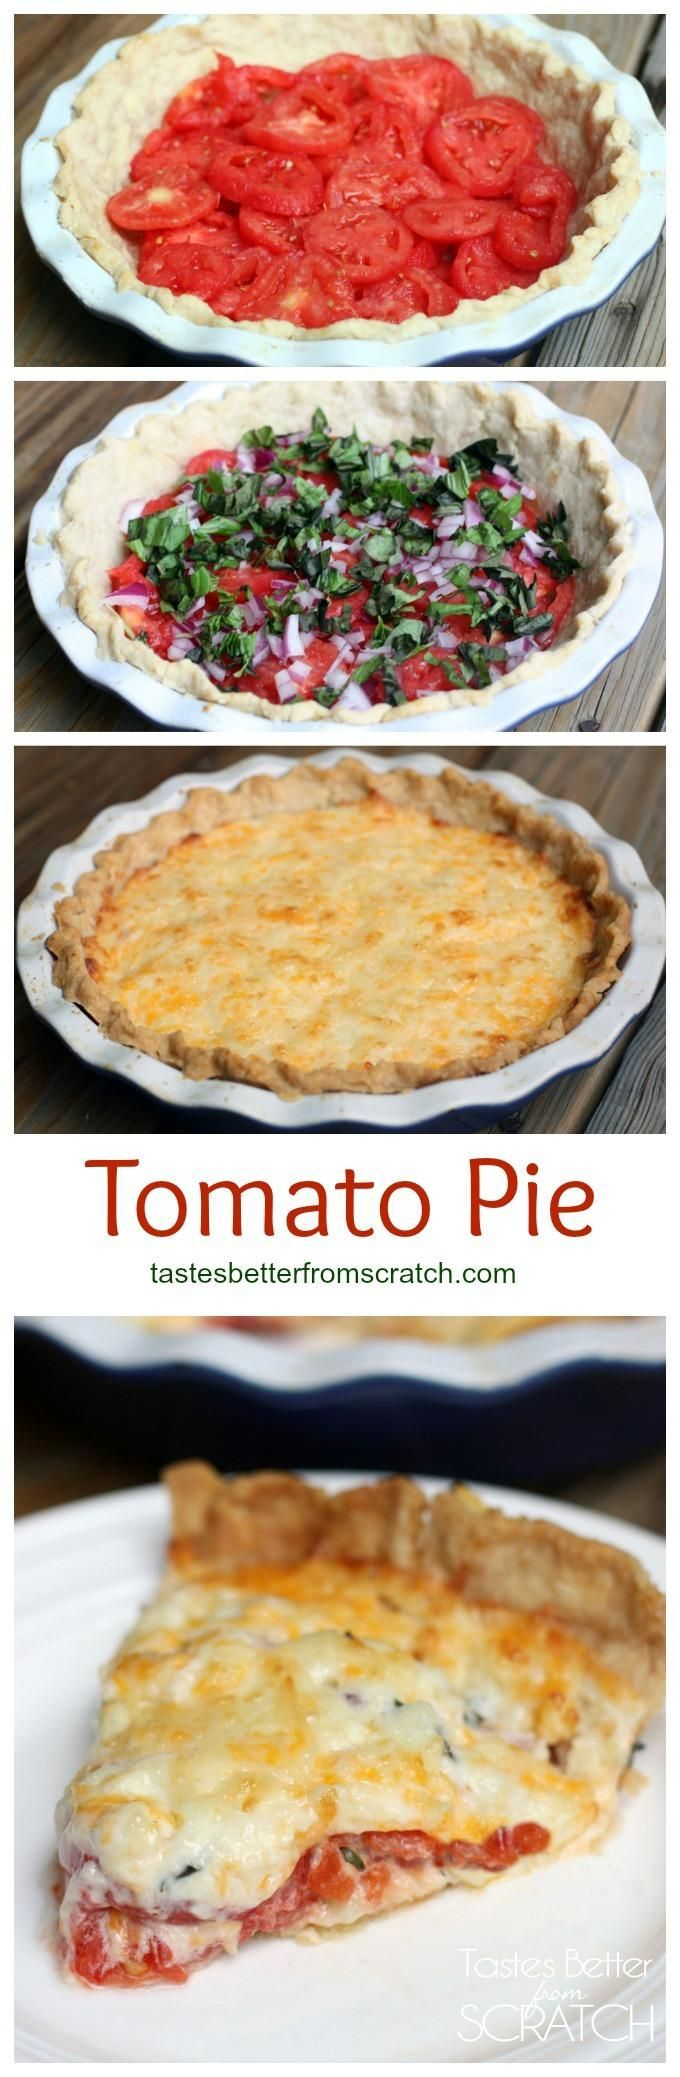 Tomato Pie from Tastes Better From Scratch